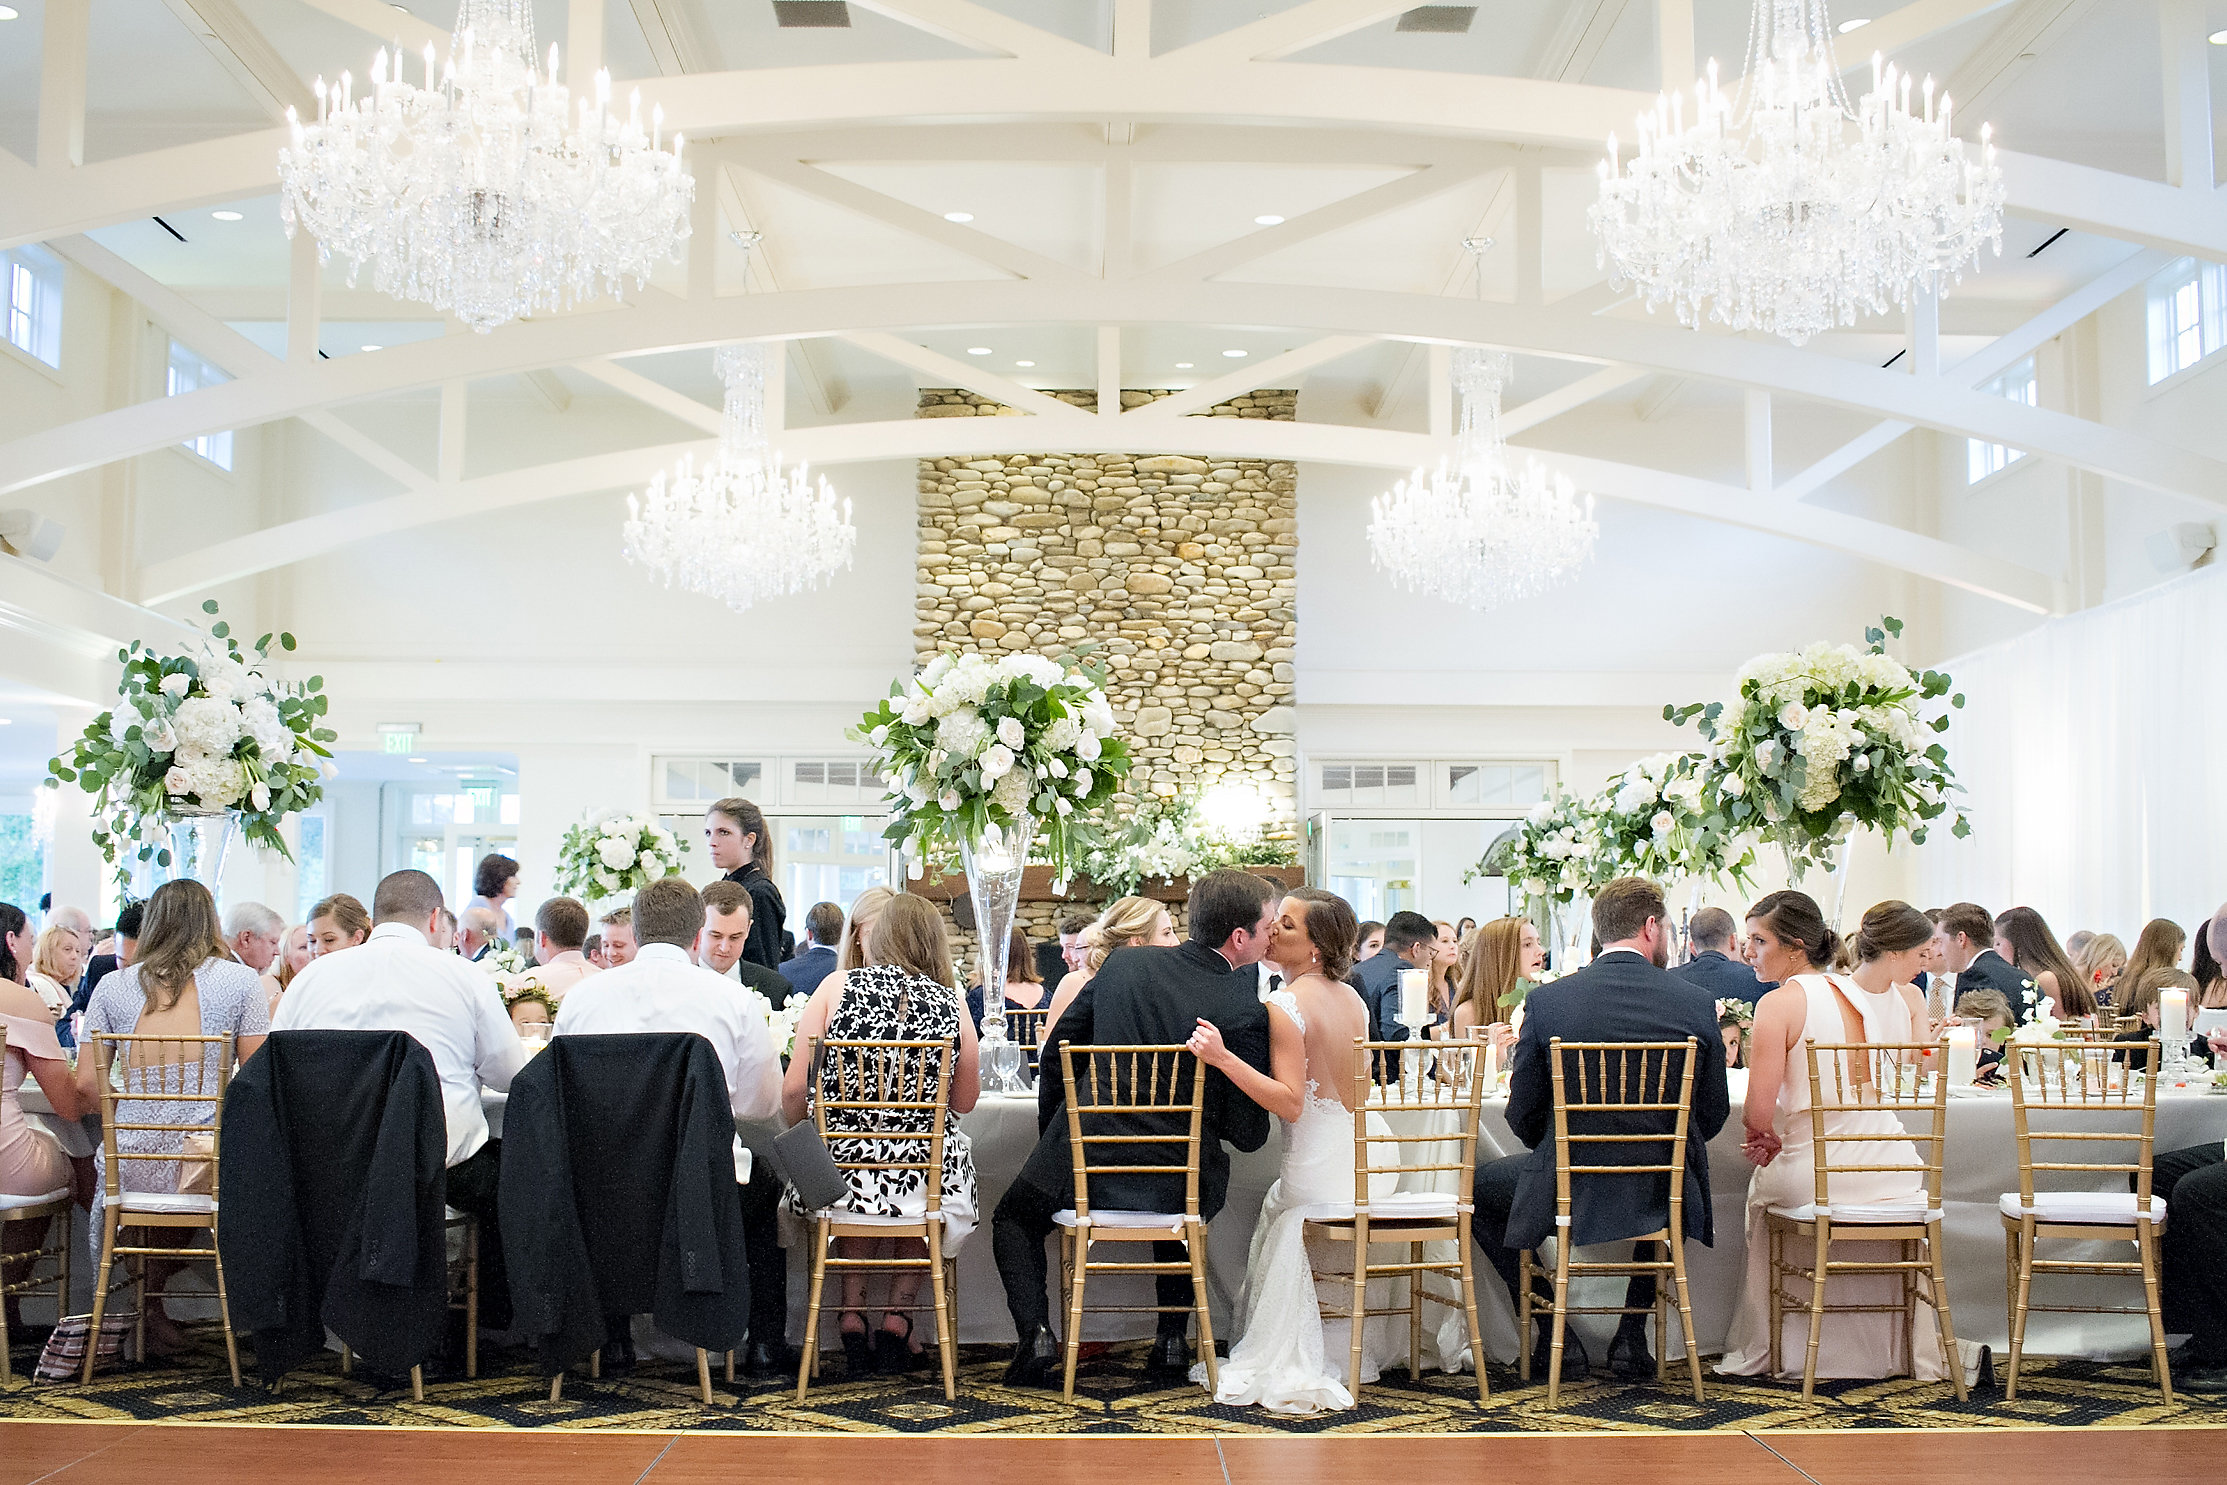 Charlotte North Carolina Wedding, Trump National Golf Course Wedding, Lakeside wedding, Blush Ivory and Greenery Wedding Design, The Graceful Host, Seated Plated Wedding Reception, Wedding Design, Tall Centerpieces, Greenery and White Wedding Flowers